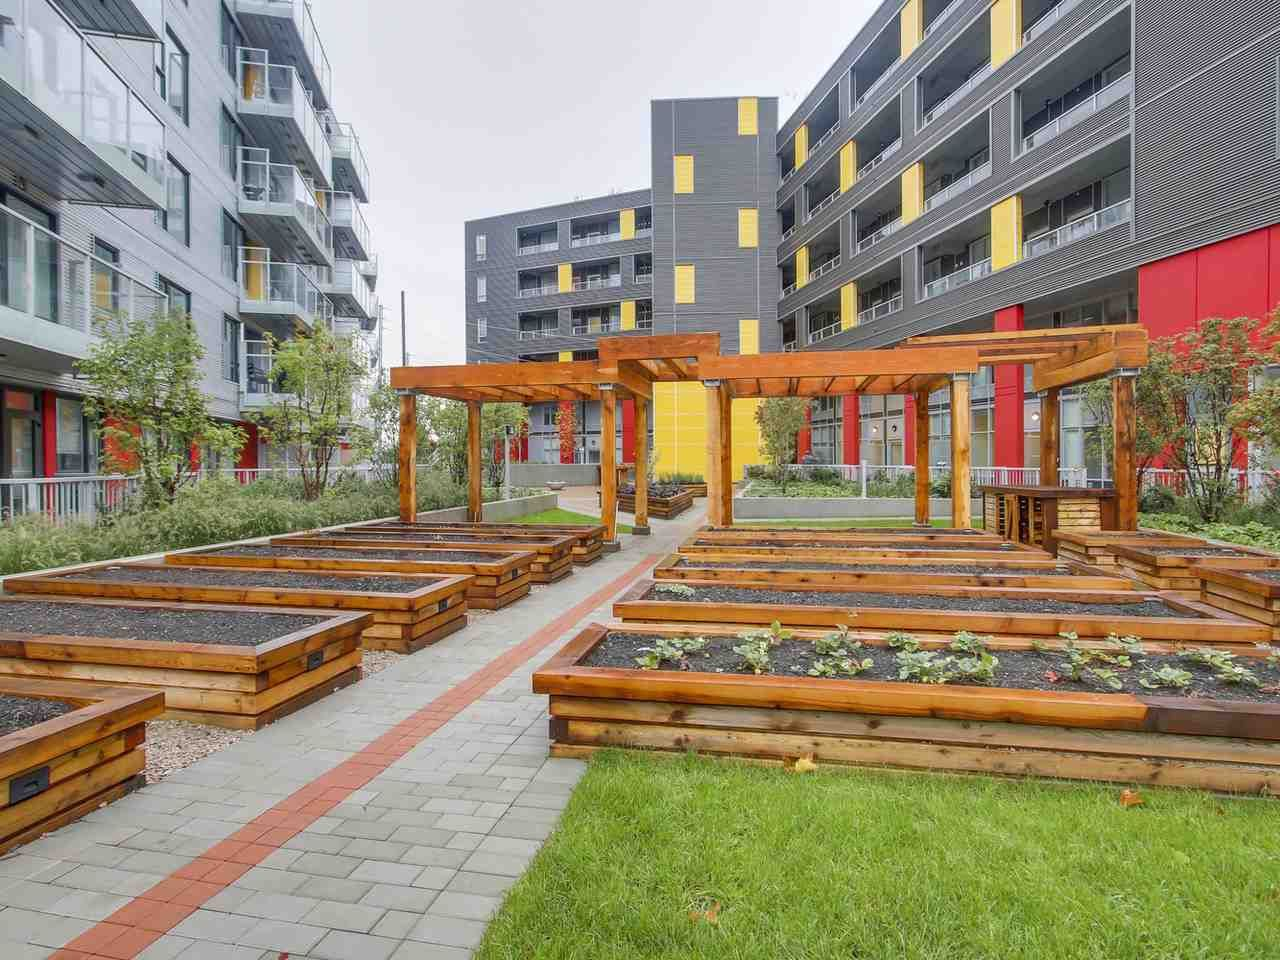 """Photo 15: Photos: 604 417 GREAT NORTHERN Way in Vancouver: Mount Pleasant VE Condo for sale in """"CANVAS"""" (Vancouver East)  : MLS®# R2118078"""